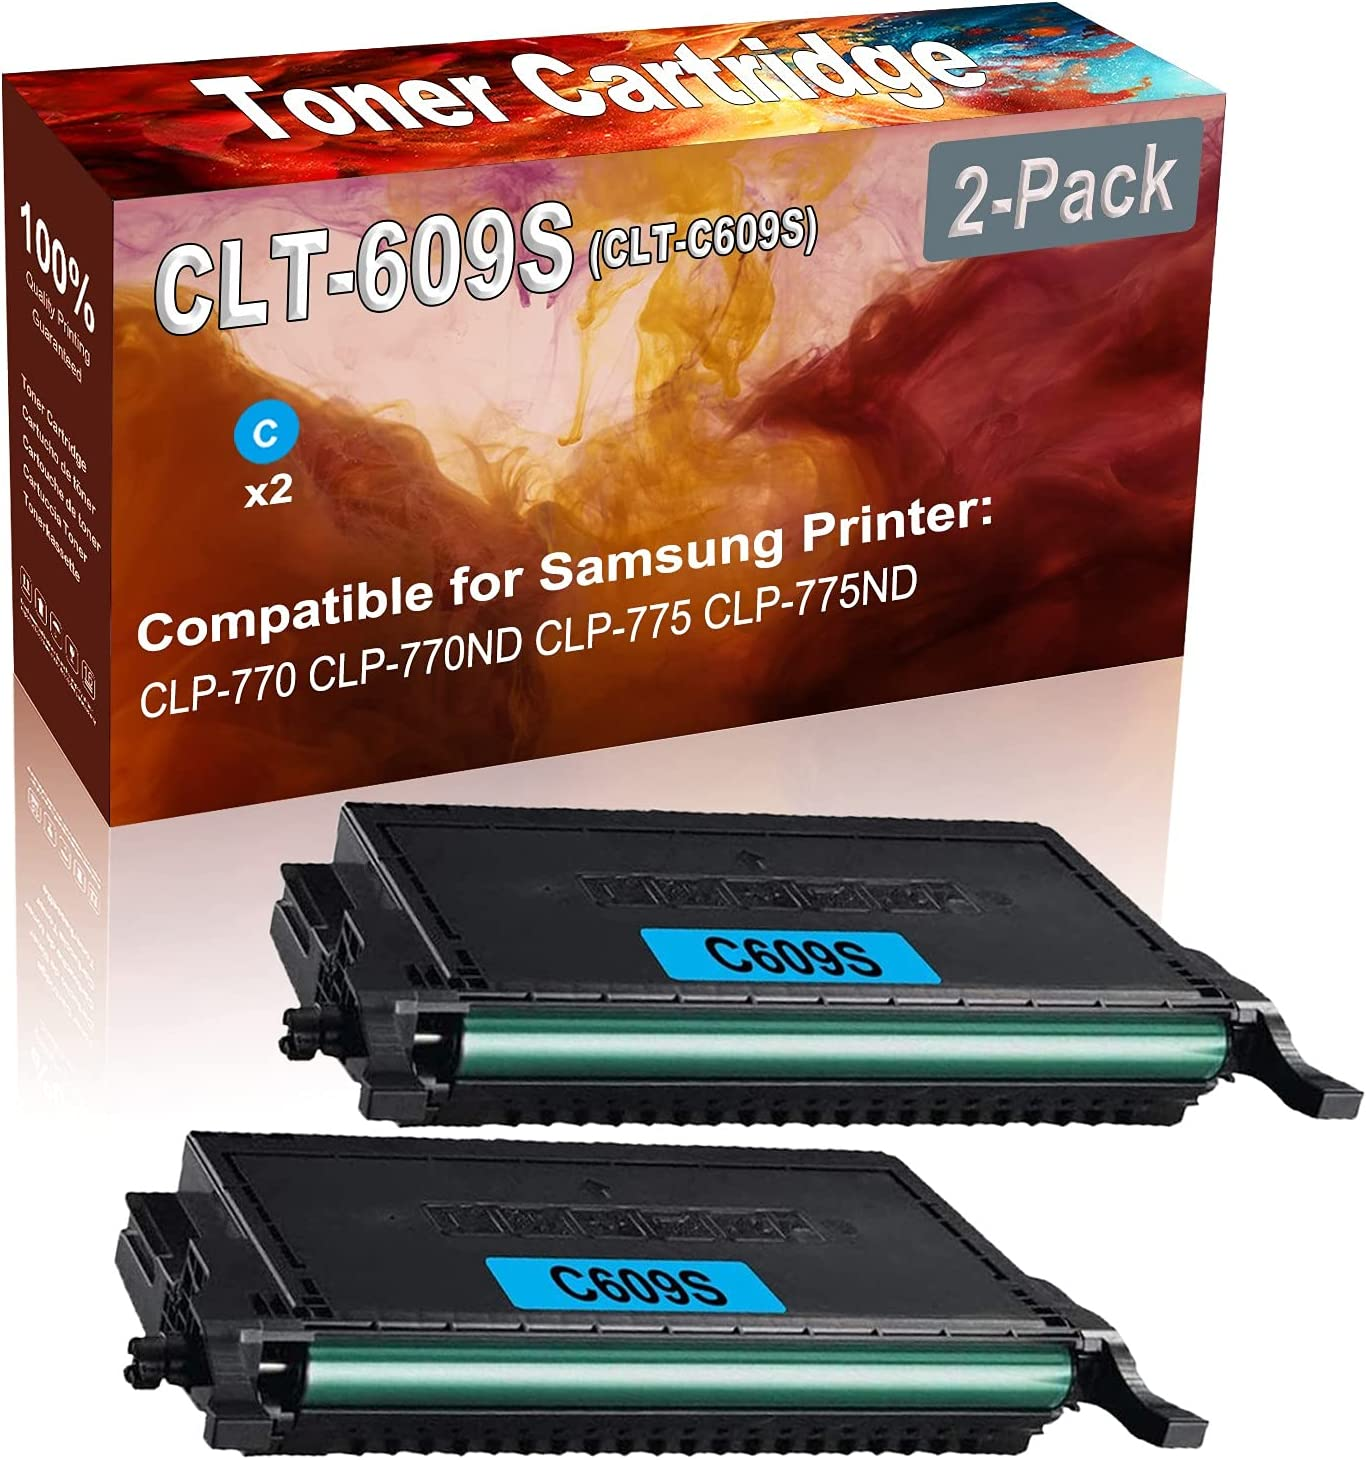 2-Pack (Cyan) Compatible CLP-770 CLP-770ND Laser Toner Cartridge (High Capacity) Replacement for Samsung CLT-609S (CLT-C609S) Printer Toner Cartridge